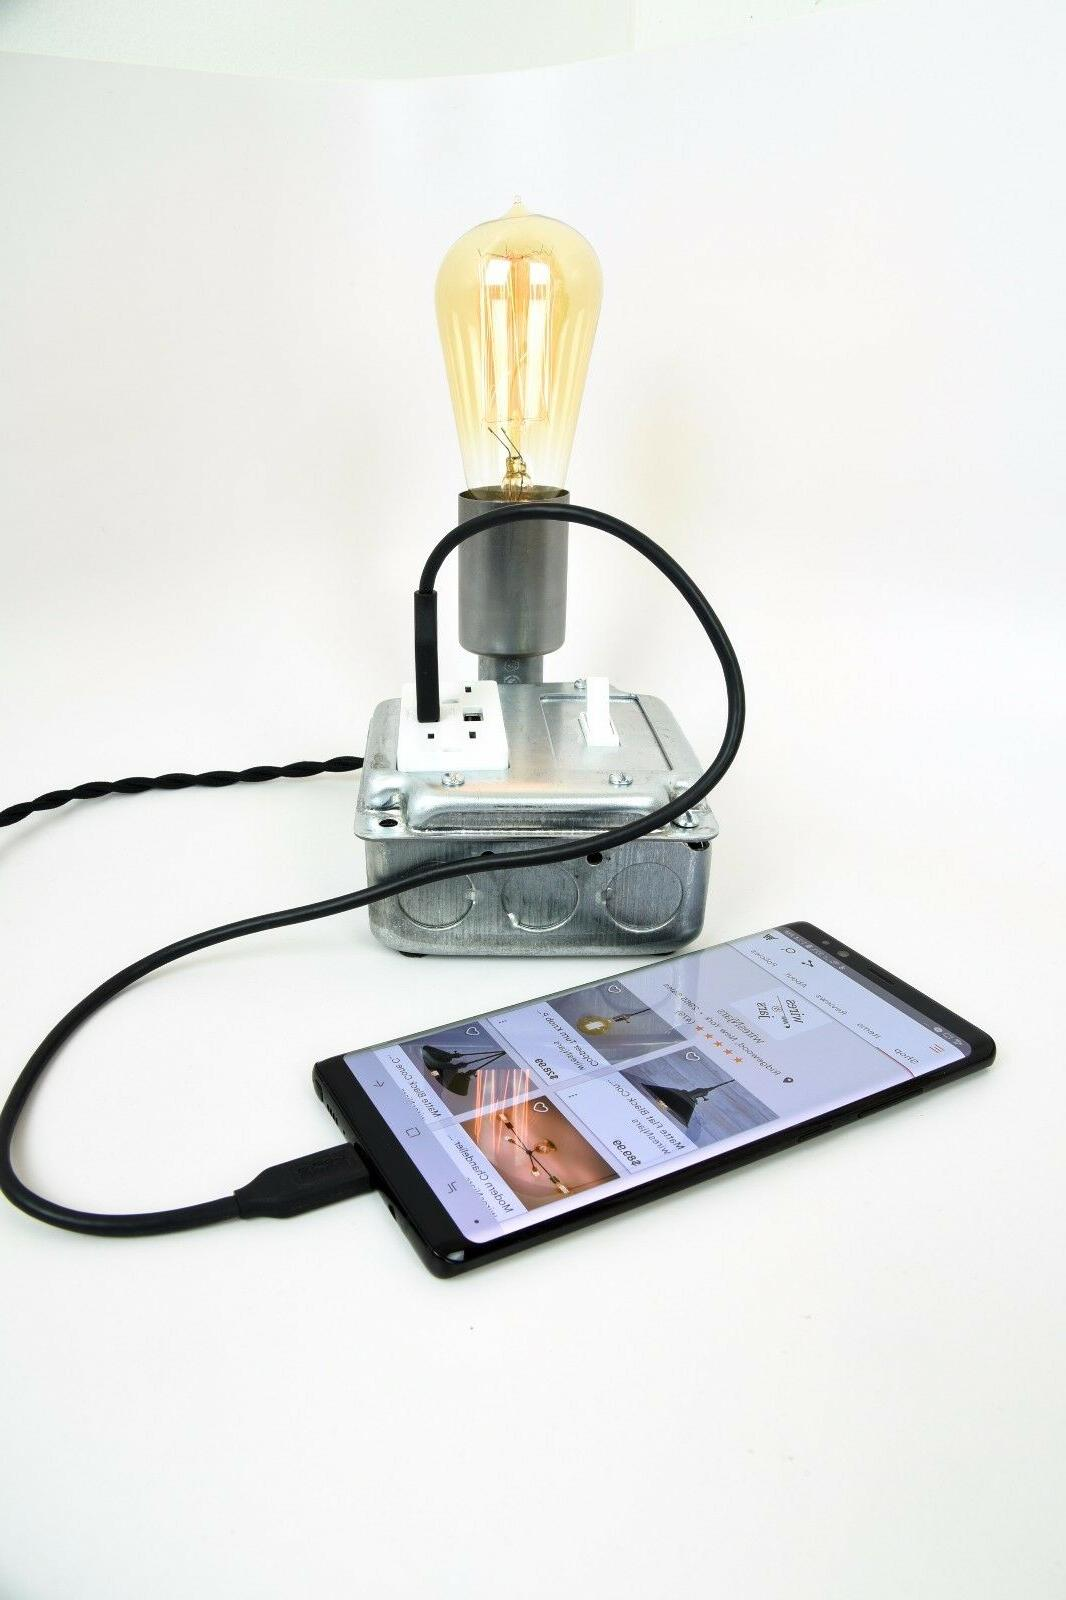 Industrial Table Lamp With USB Ports And Outlets Desk Chargi